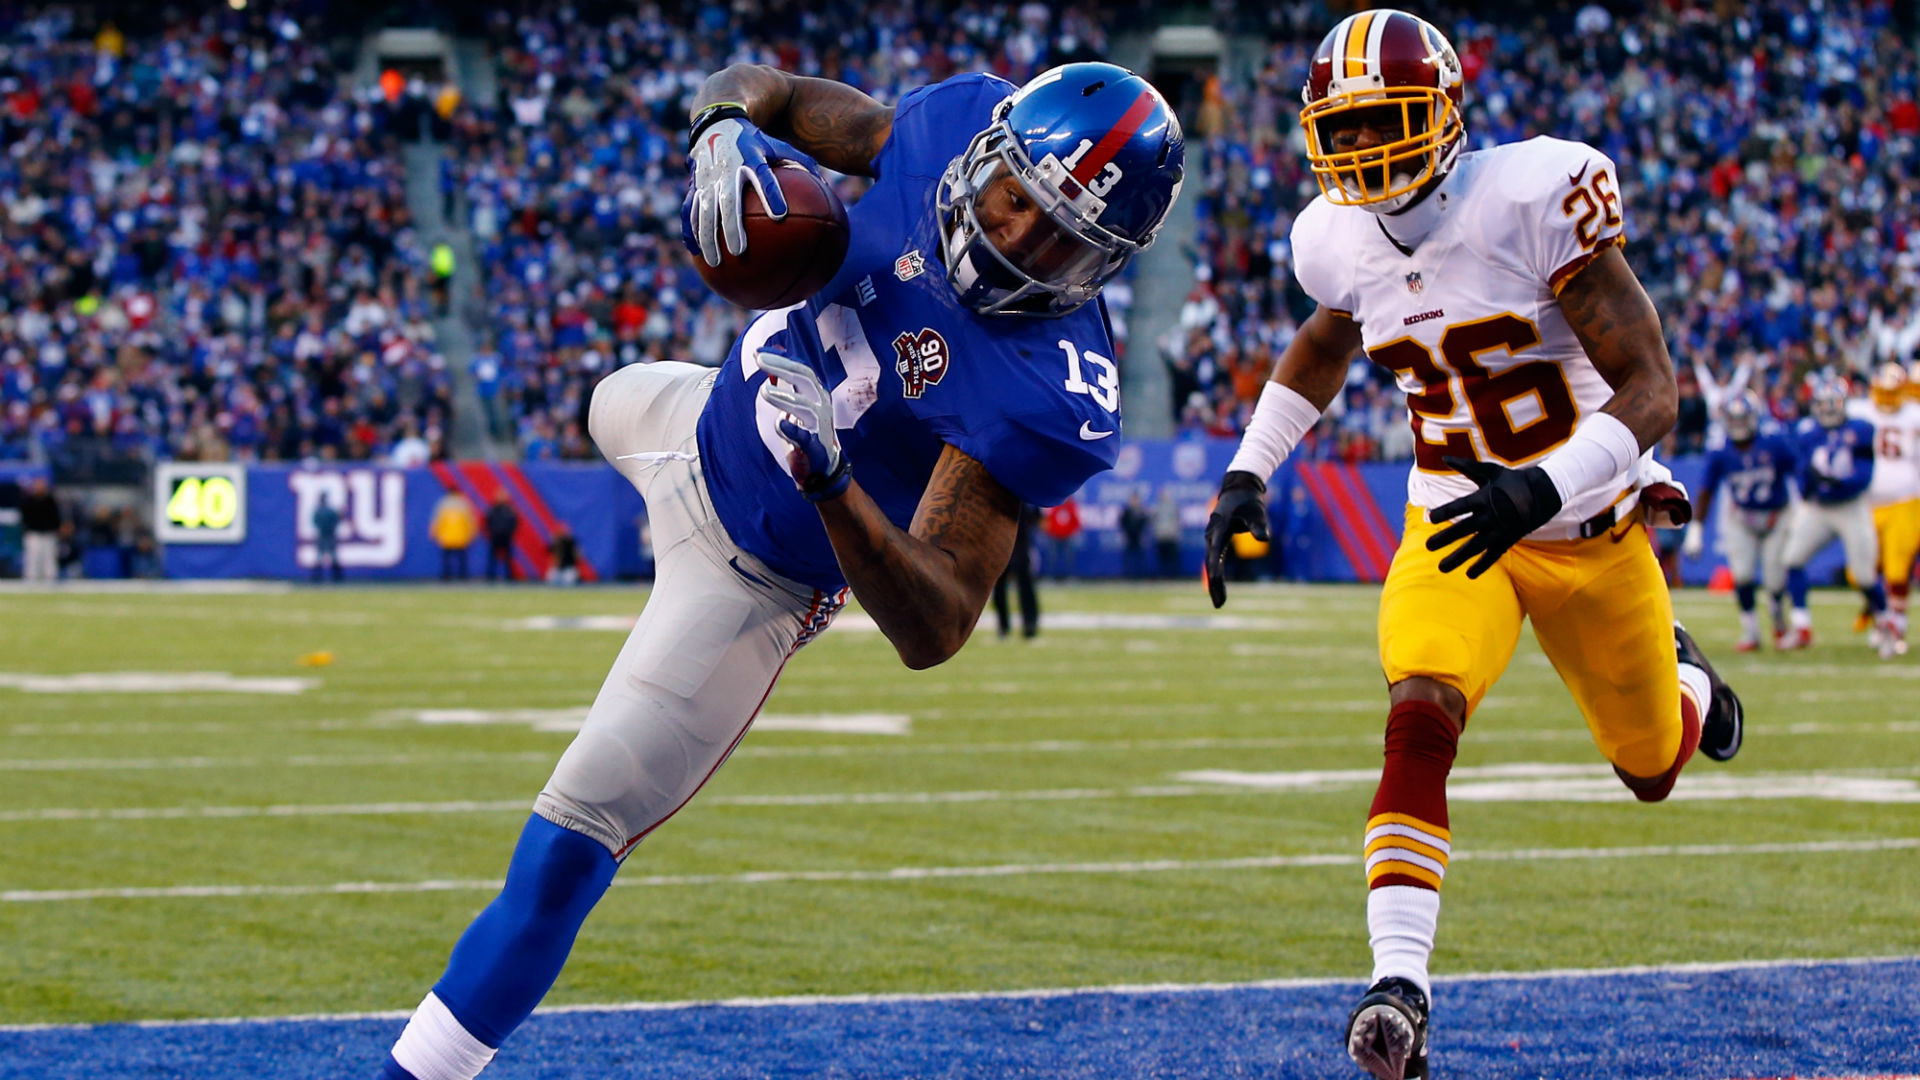 1920x1080 Odell Beckham catches AP Offensive Rookie of the Year Award | NFL |  Sporting News